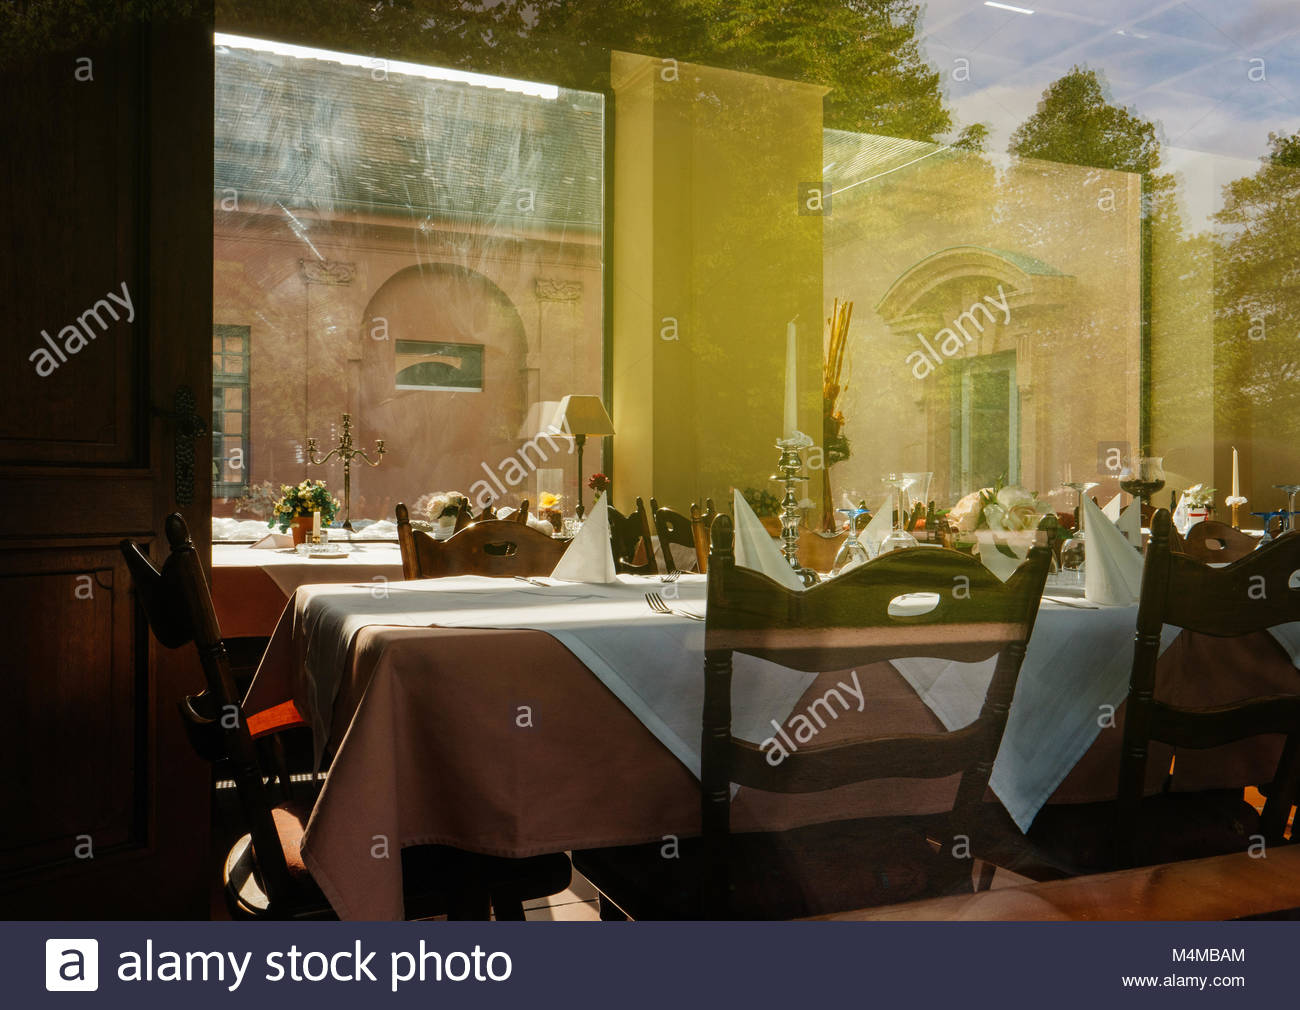 Empty table in restaurant ready for fine dining - Stock Image